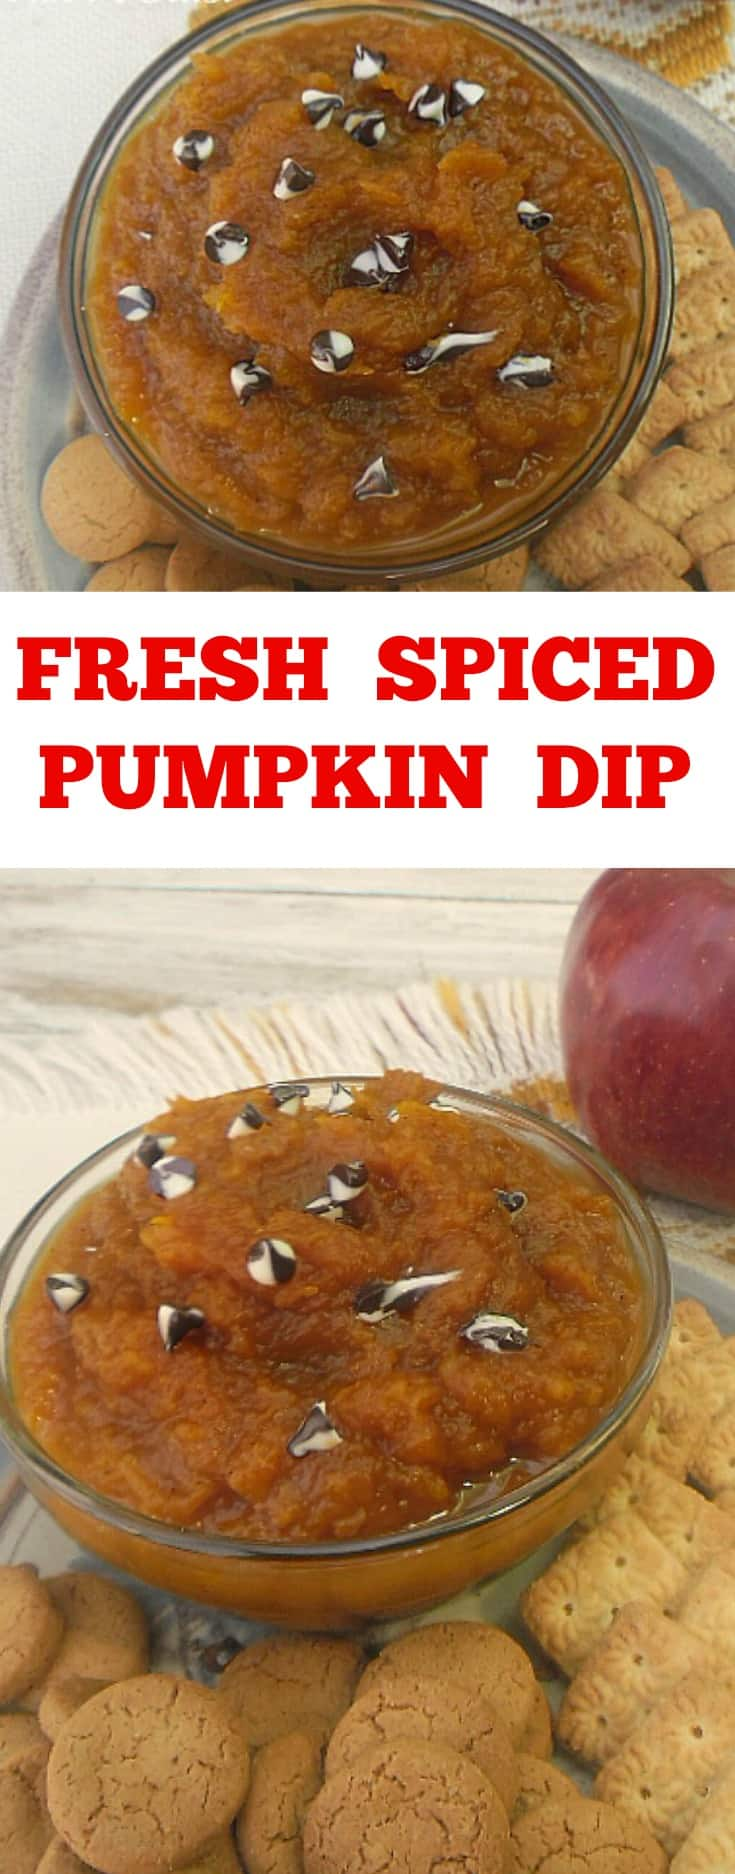 Fresh Spiced Pumpkin Dip ~ Delicious Spiced Pumpkin is so versatile - use it as a dip or as a spread on toast ~ serve warm or cold ! #PumpkinRecipe #PumpkinDip #Dips #FallRecipe #PumpkinSpread